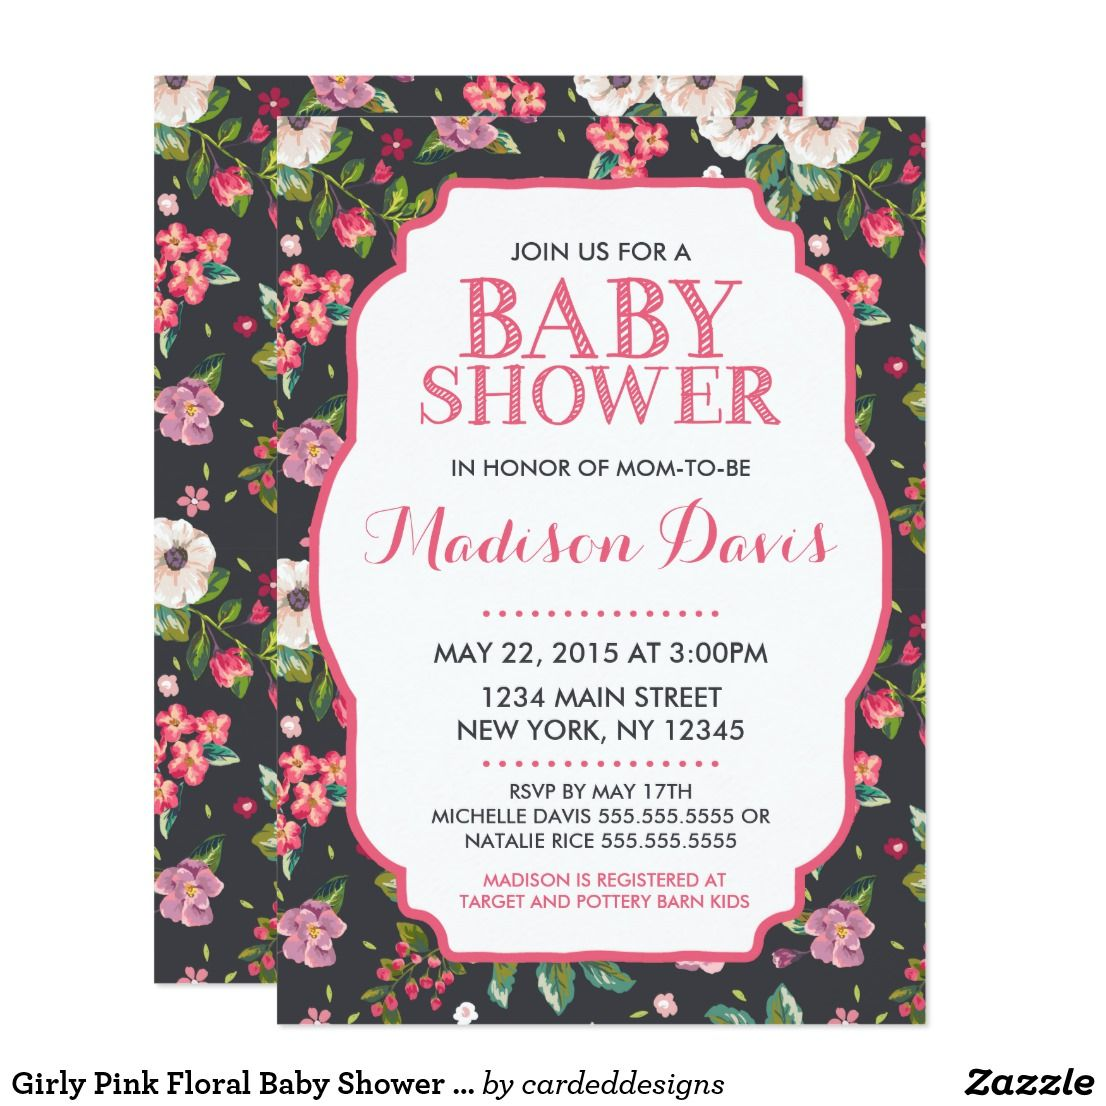 Girly Pink Floral Baby Shower Invitations | Invitations | Pinterest ...